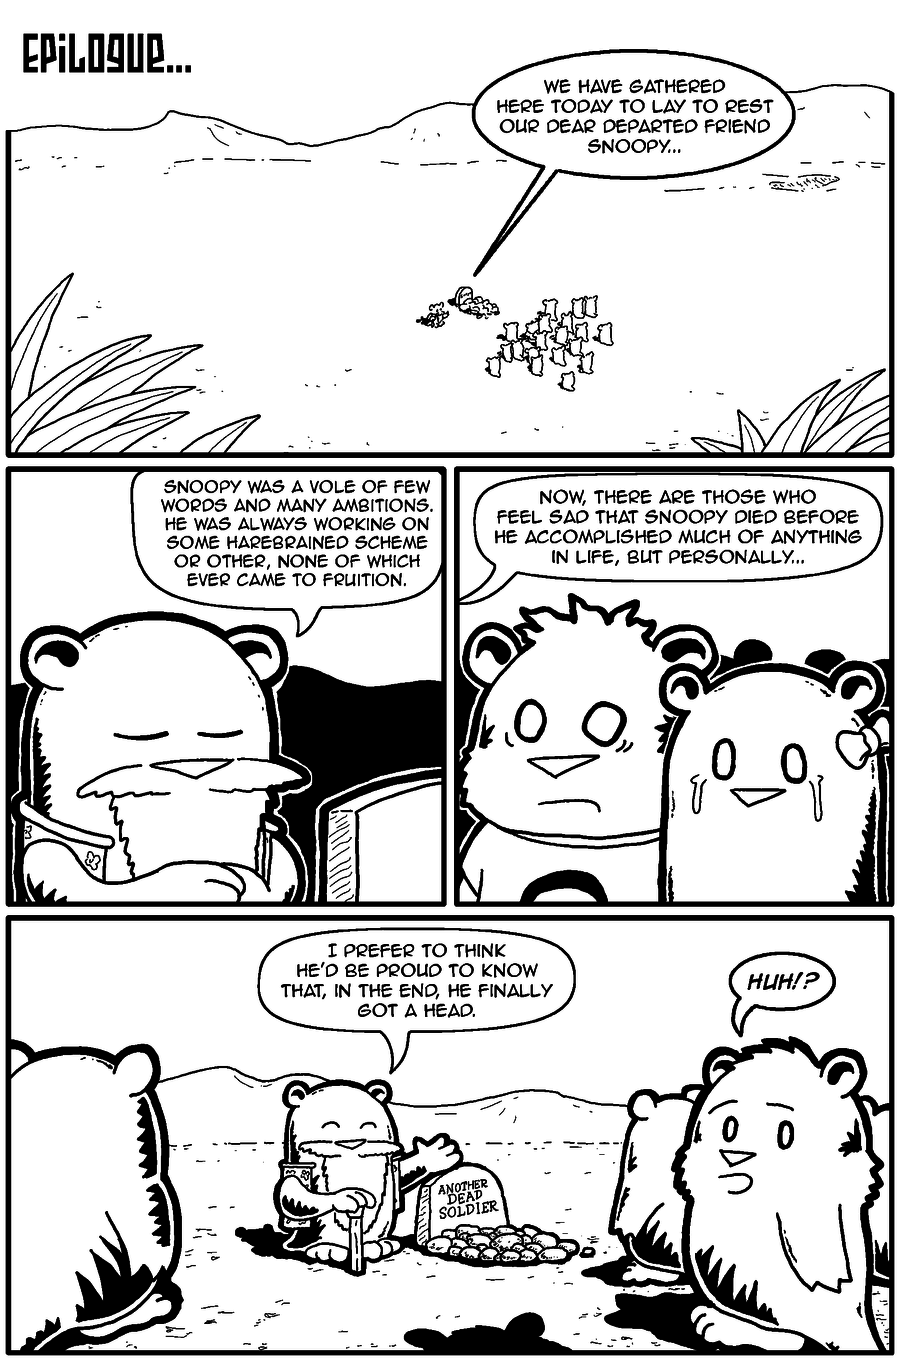 The Last Human Alive, Page 35